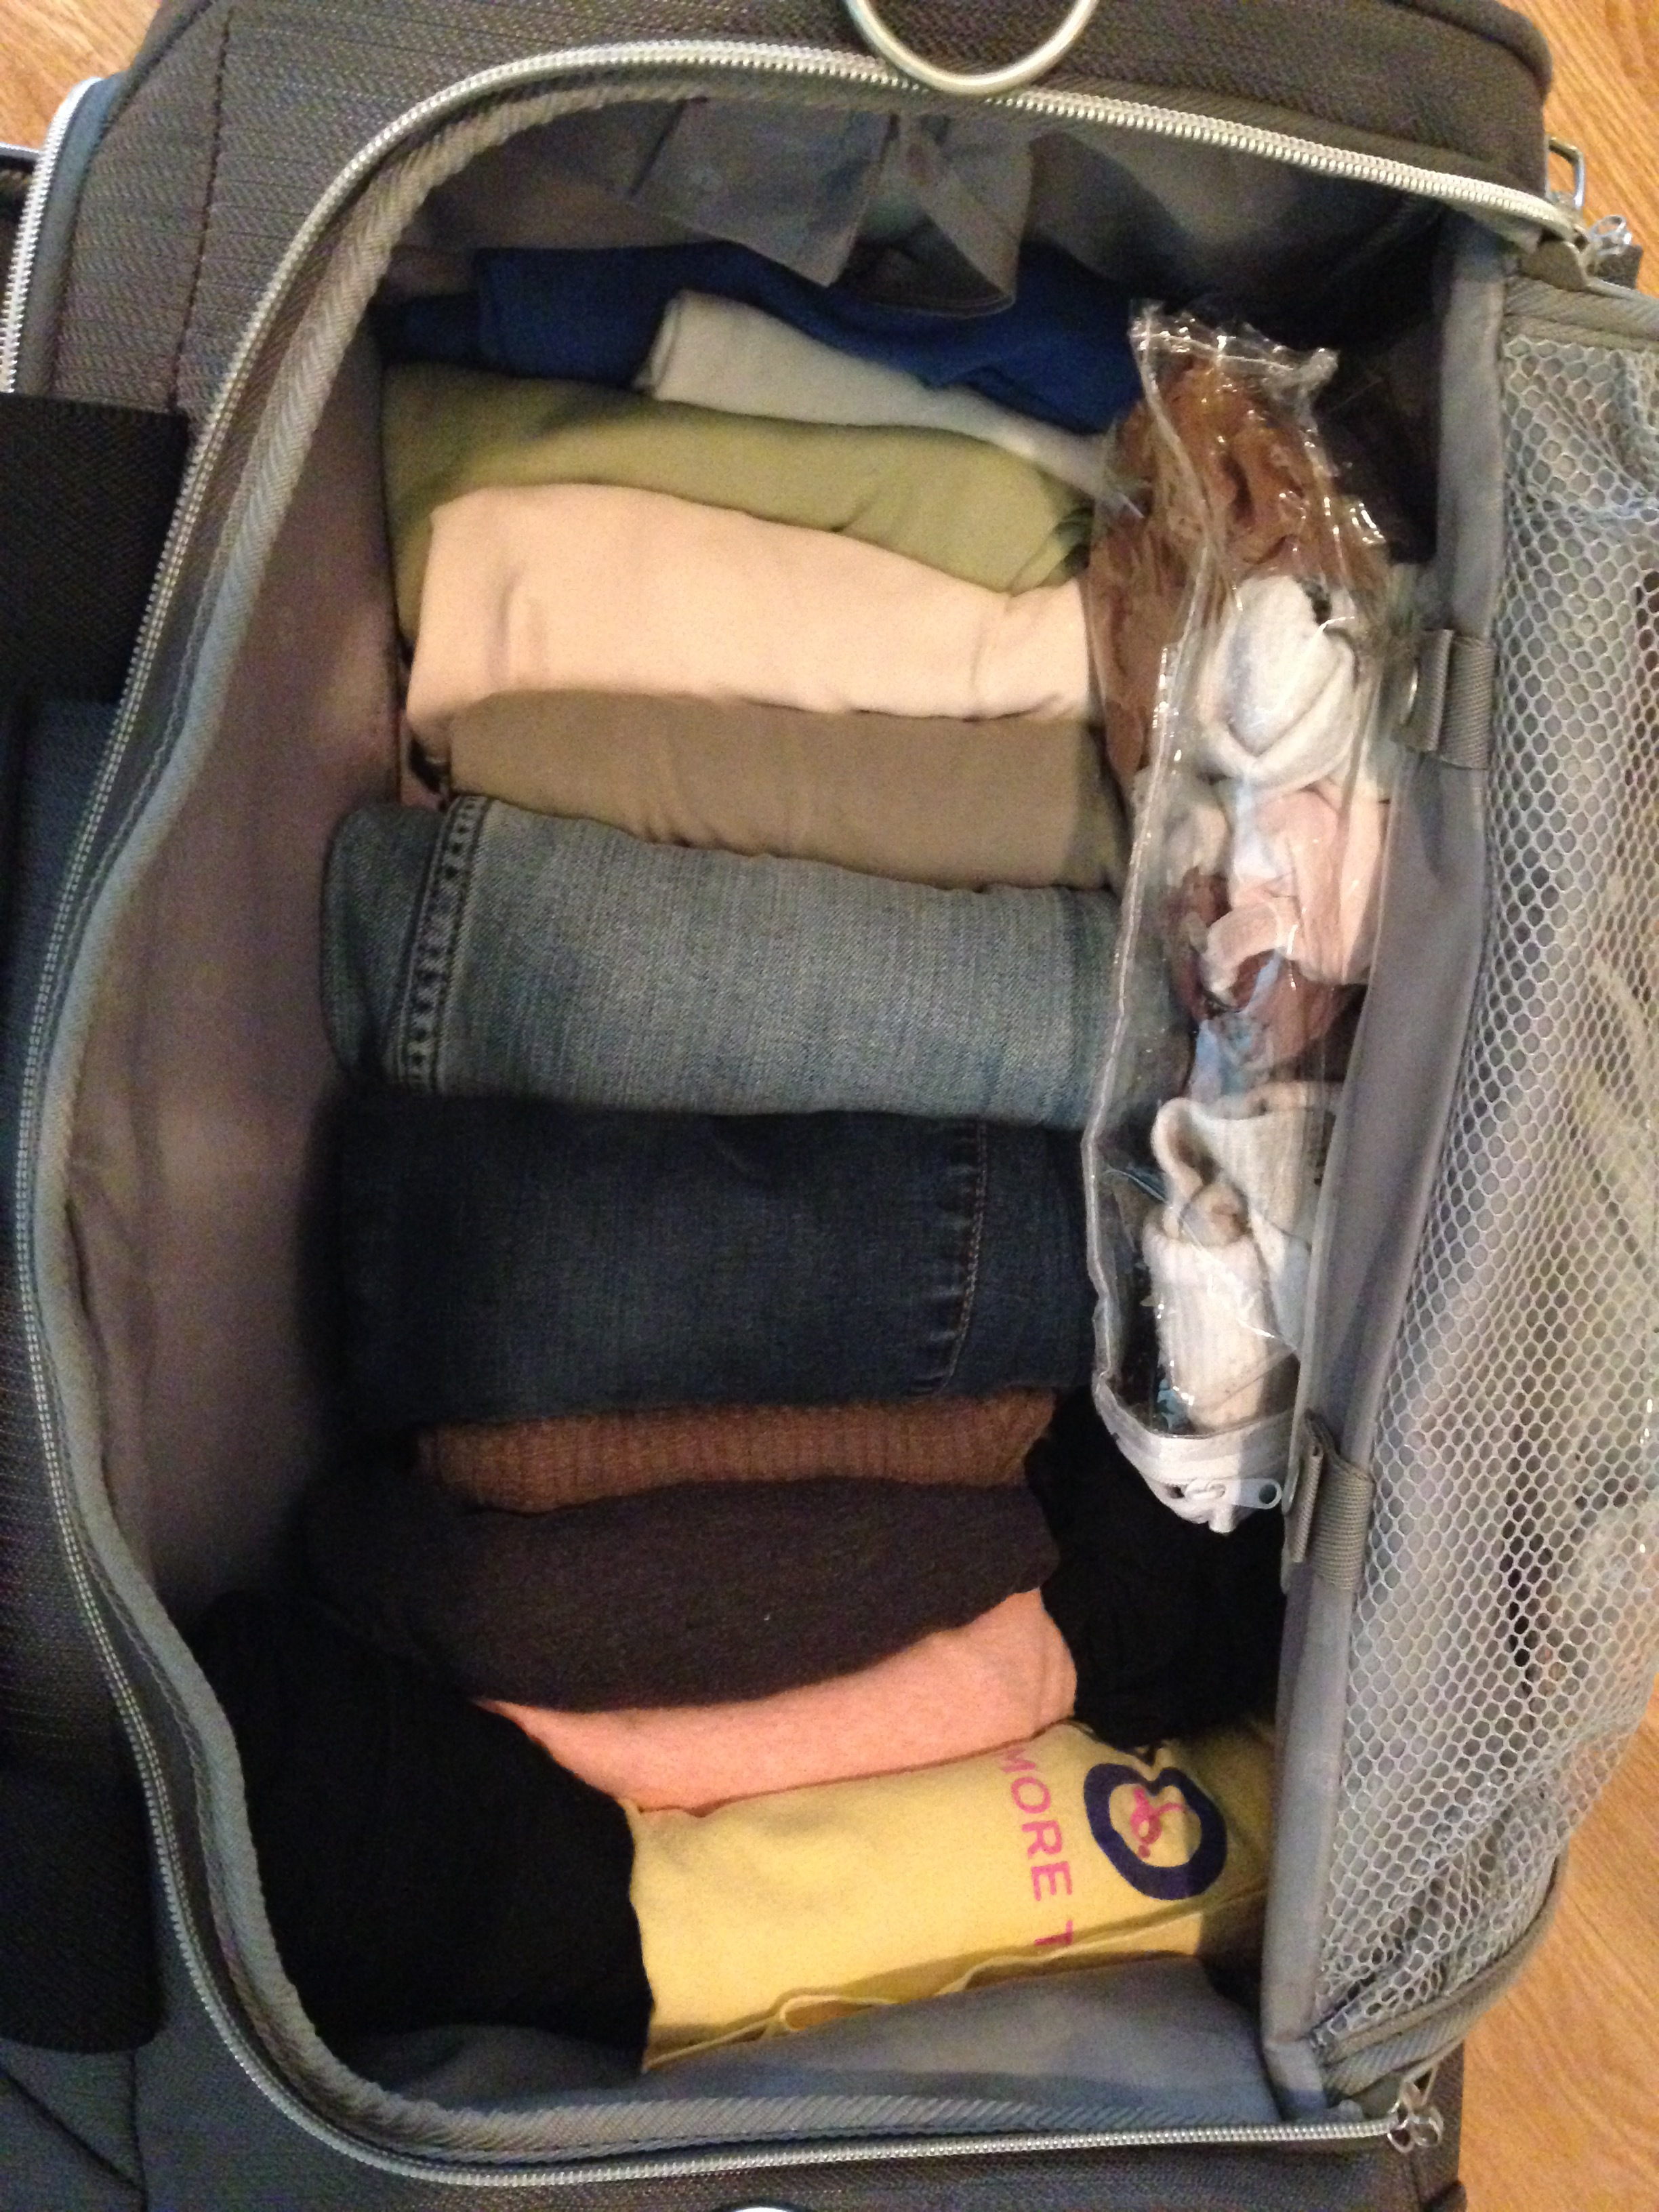 Zippered plastic linen bags keep socks and underwear neatly tucked away.  Rolled clothes remain wrinkle-free and visible for easy pairings with less disruption by TSA bag searches.